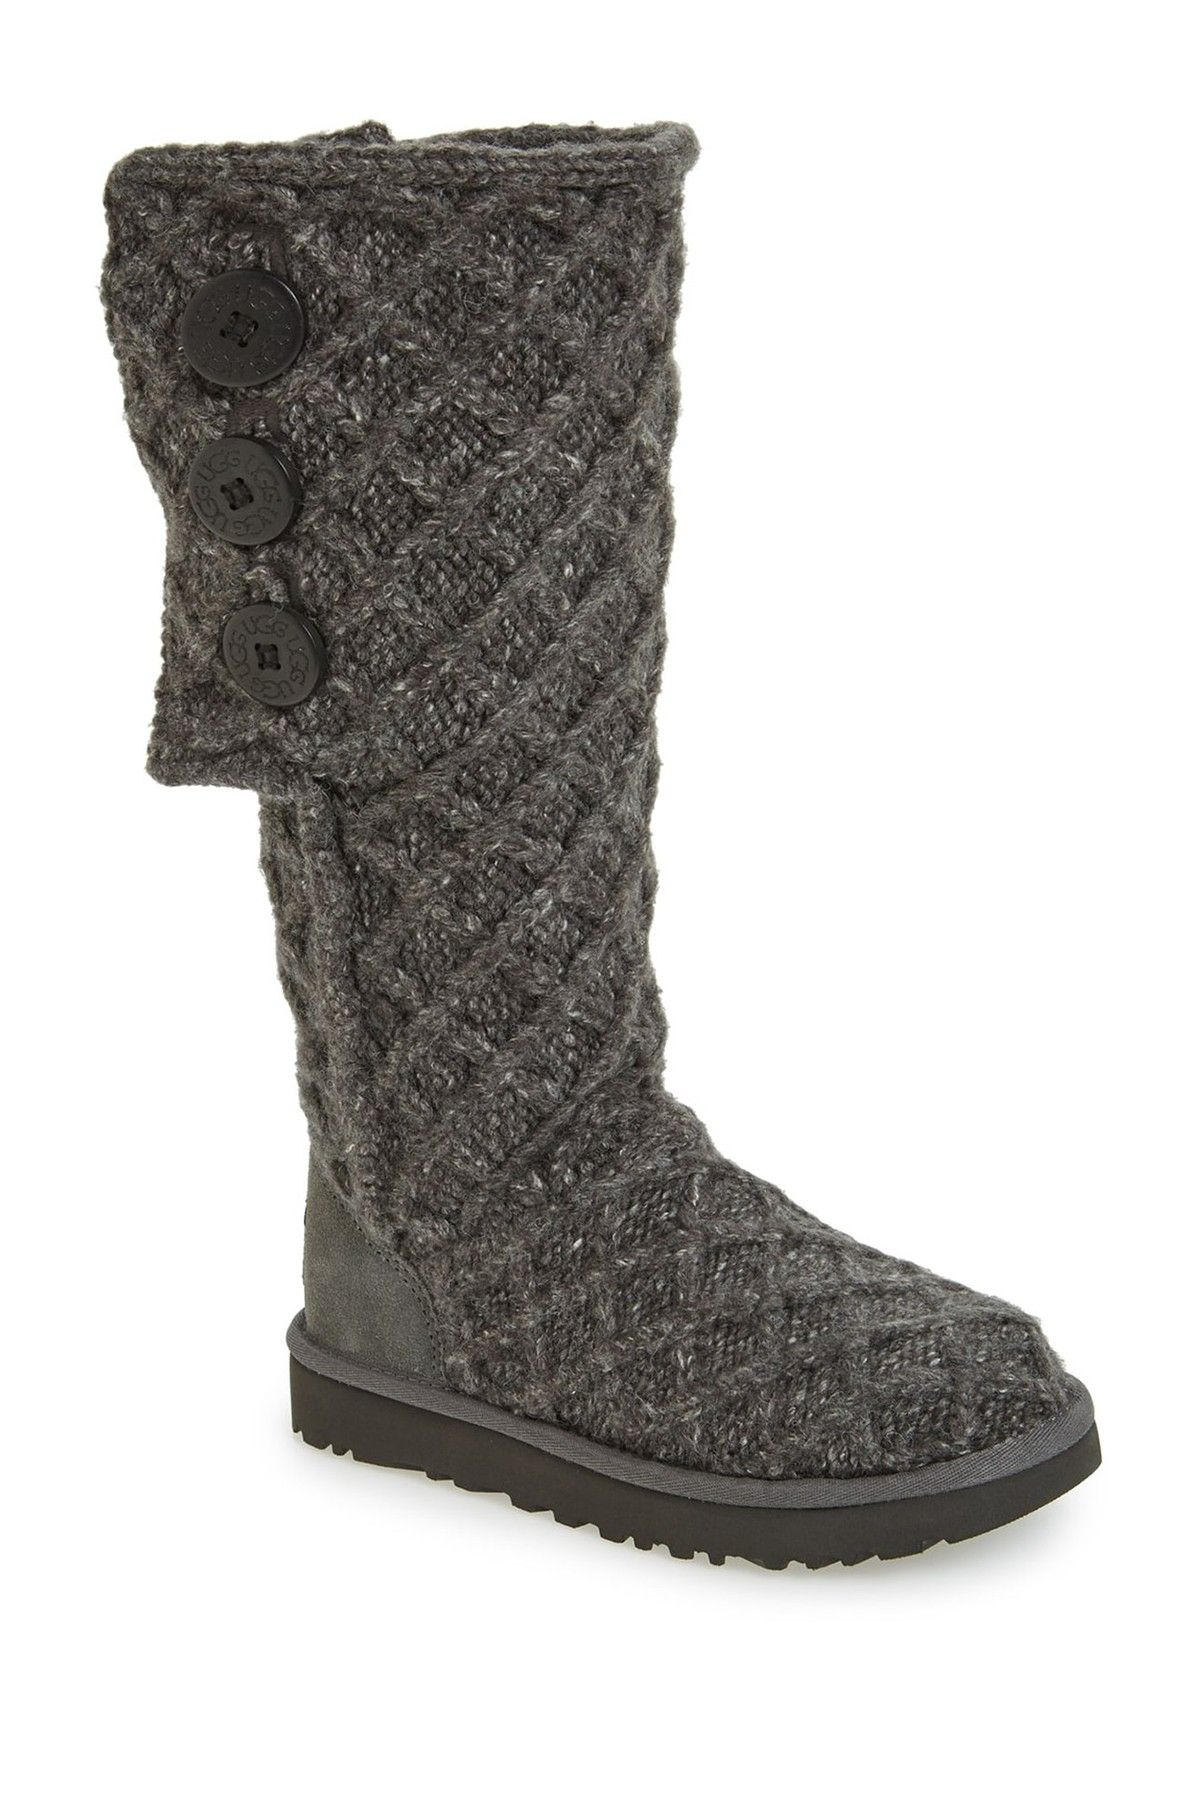 6cf12d76e78 Lattice Cardy UGGpure(TM) Knit Boot | Fall Fashion | Uggs, Boots ...